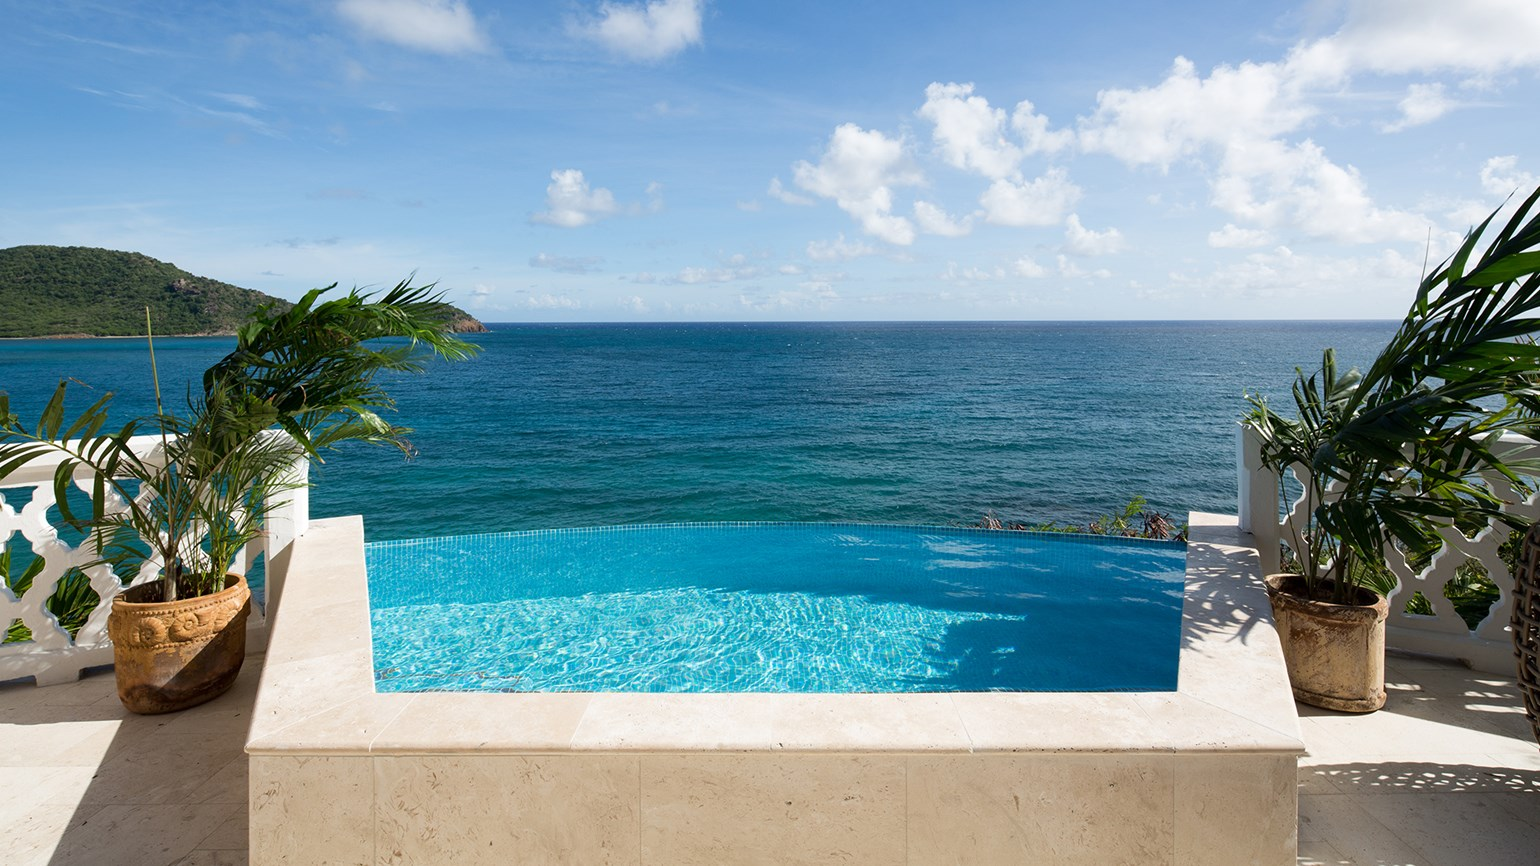 Curtain Bluff to close next spring for 6-month renovation: Travel Weekly